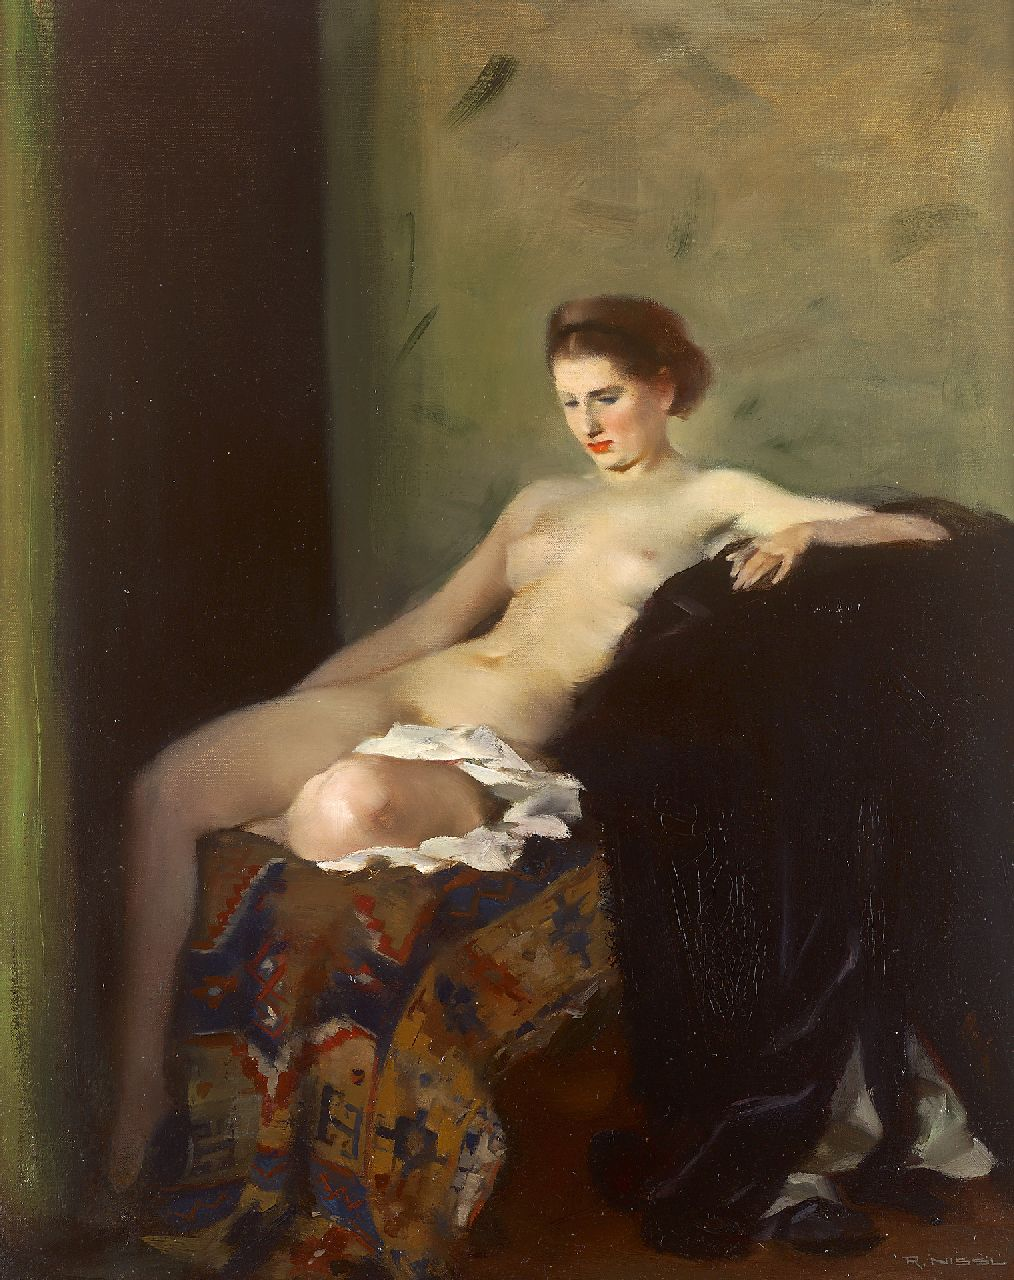 Rudolf Nissl | Seated nude on Persian rug, oil on canvas, 72.3 x 57.7 cm, signed l.r.